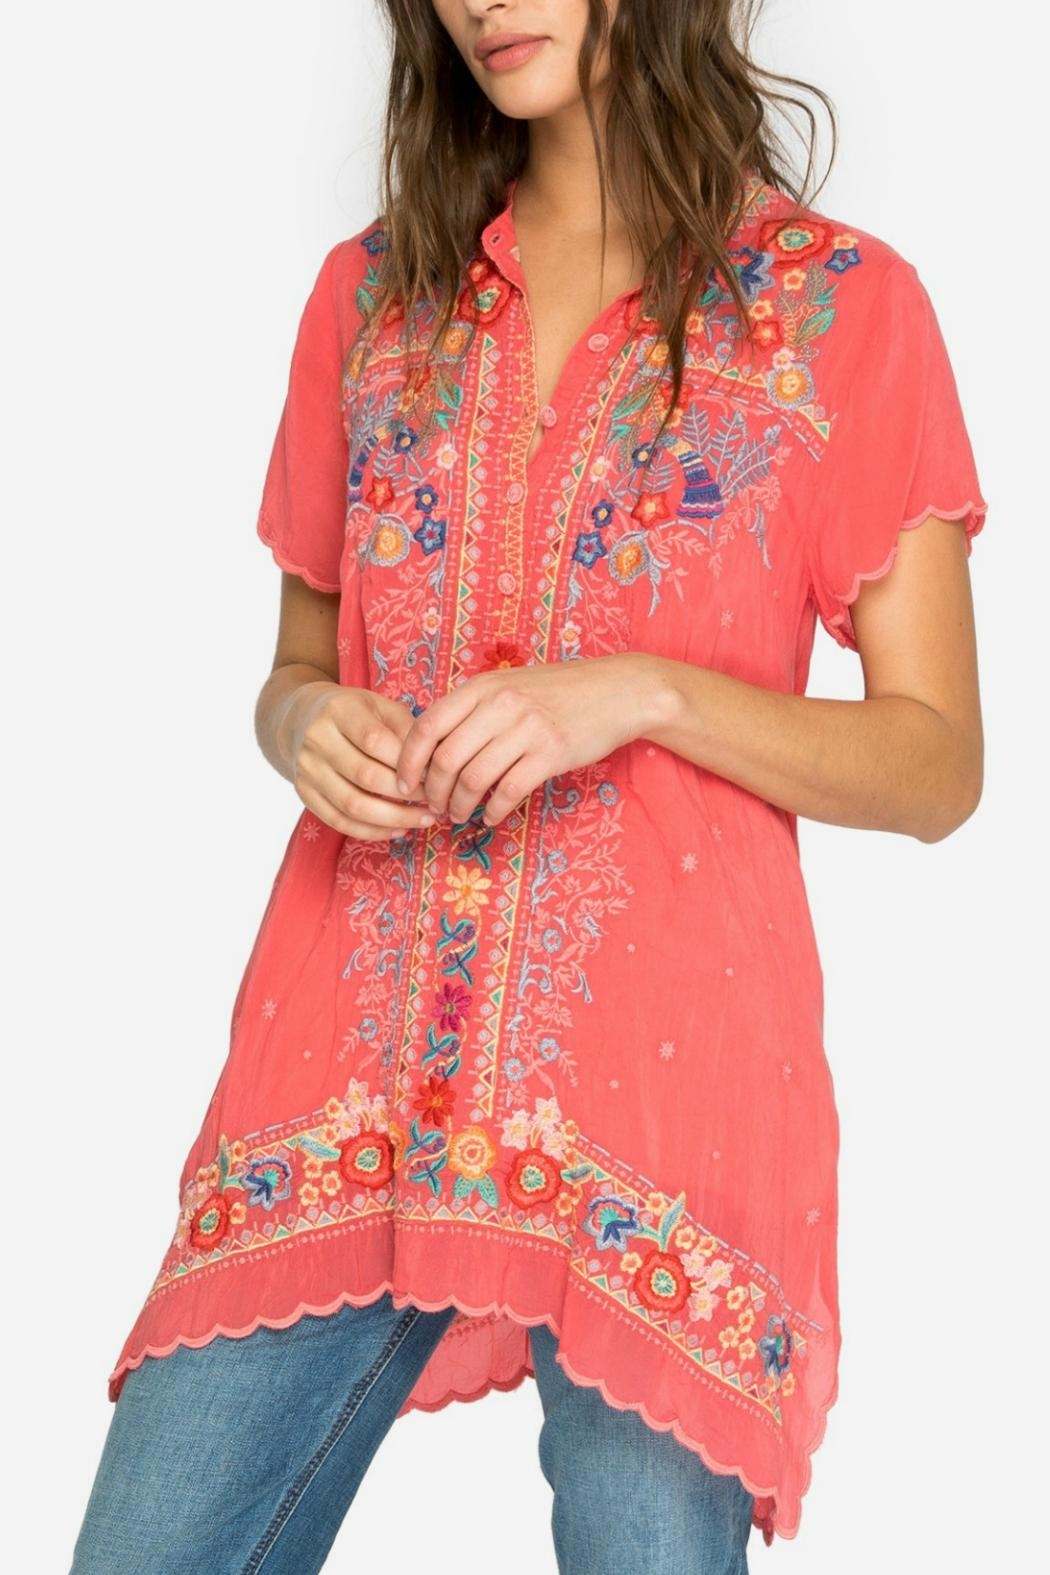 Johnny Was Passion Fruit Tunic - Main Image